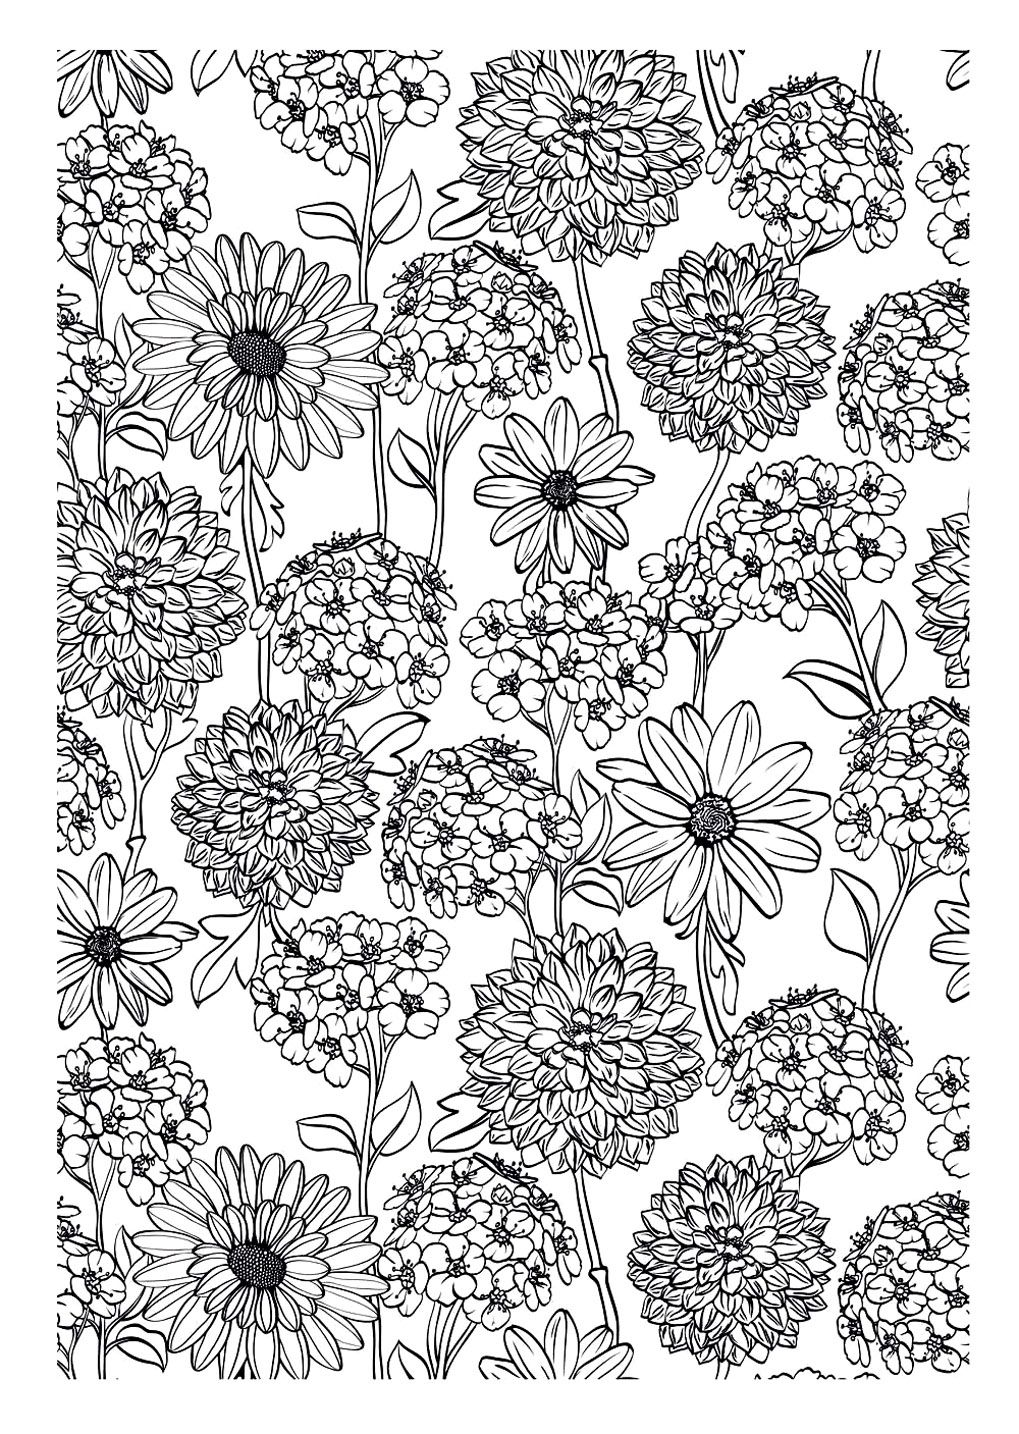 To print this free coloring page coloringadultflowers click on